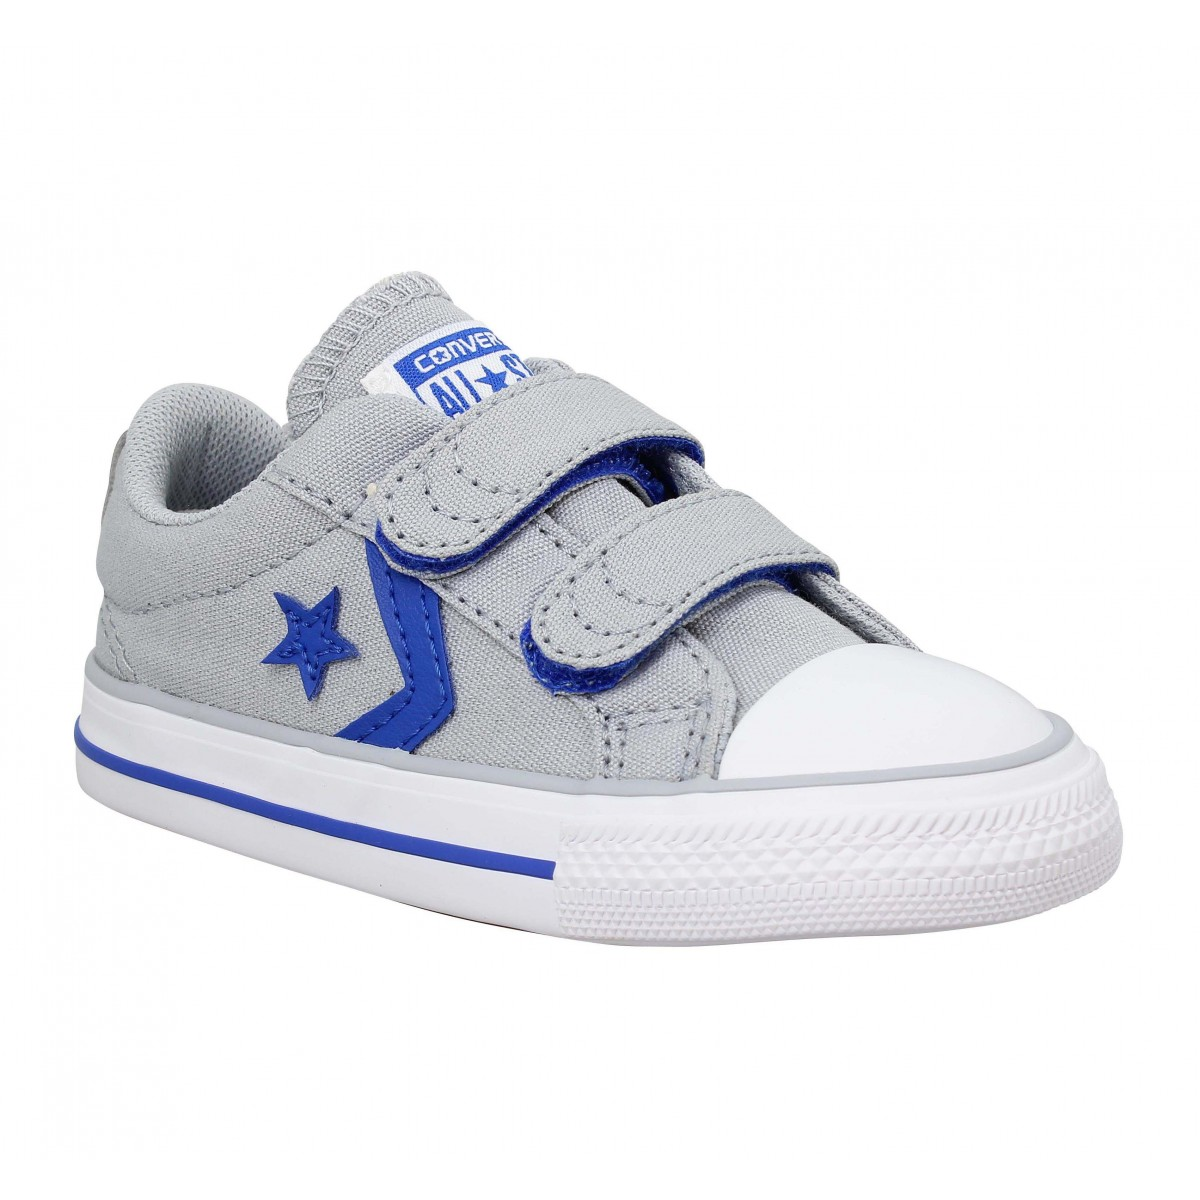 Baskets CONVERSE Star Player 2V toile enfant 1W7yhh4b